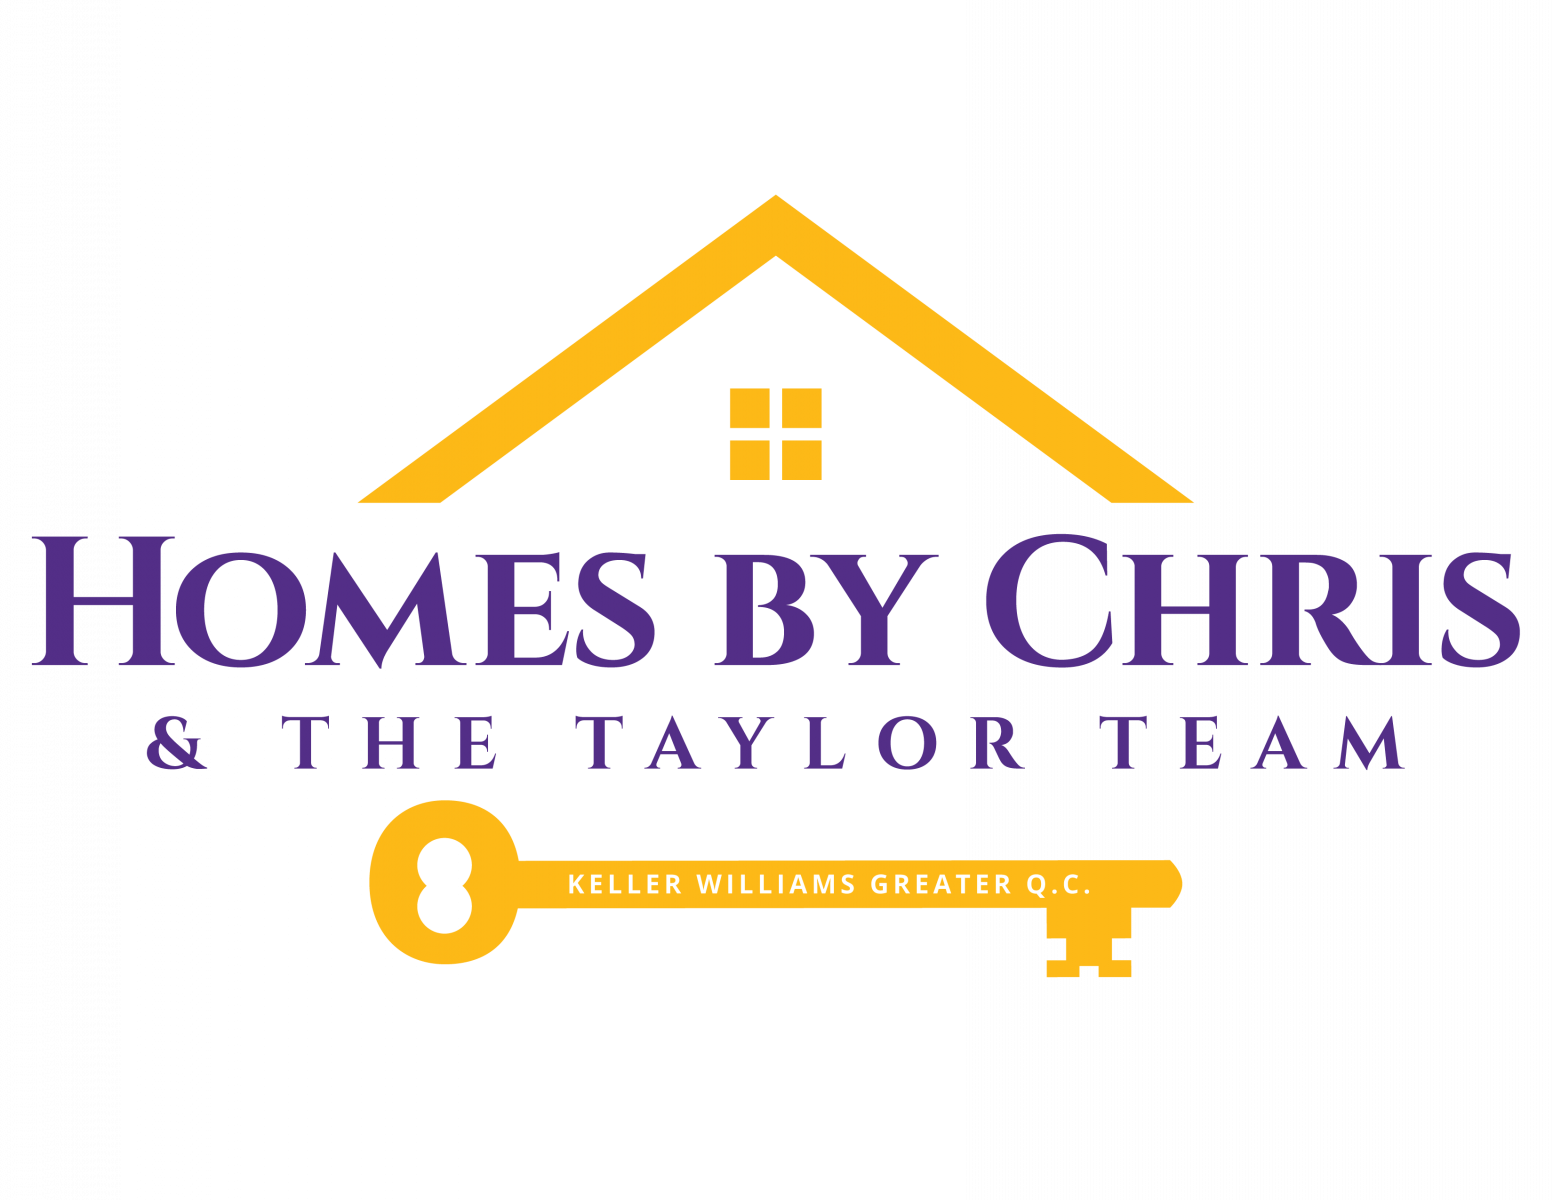 Homes By Chris + The Taylor Team logo